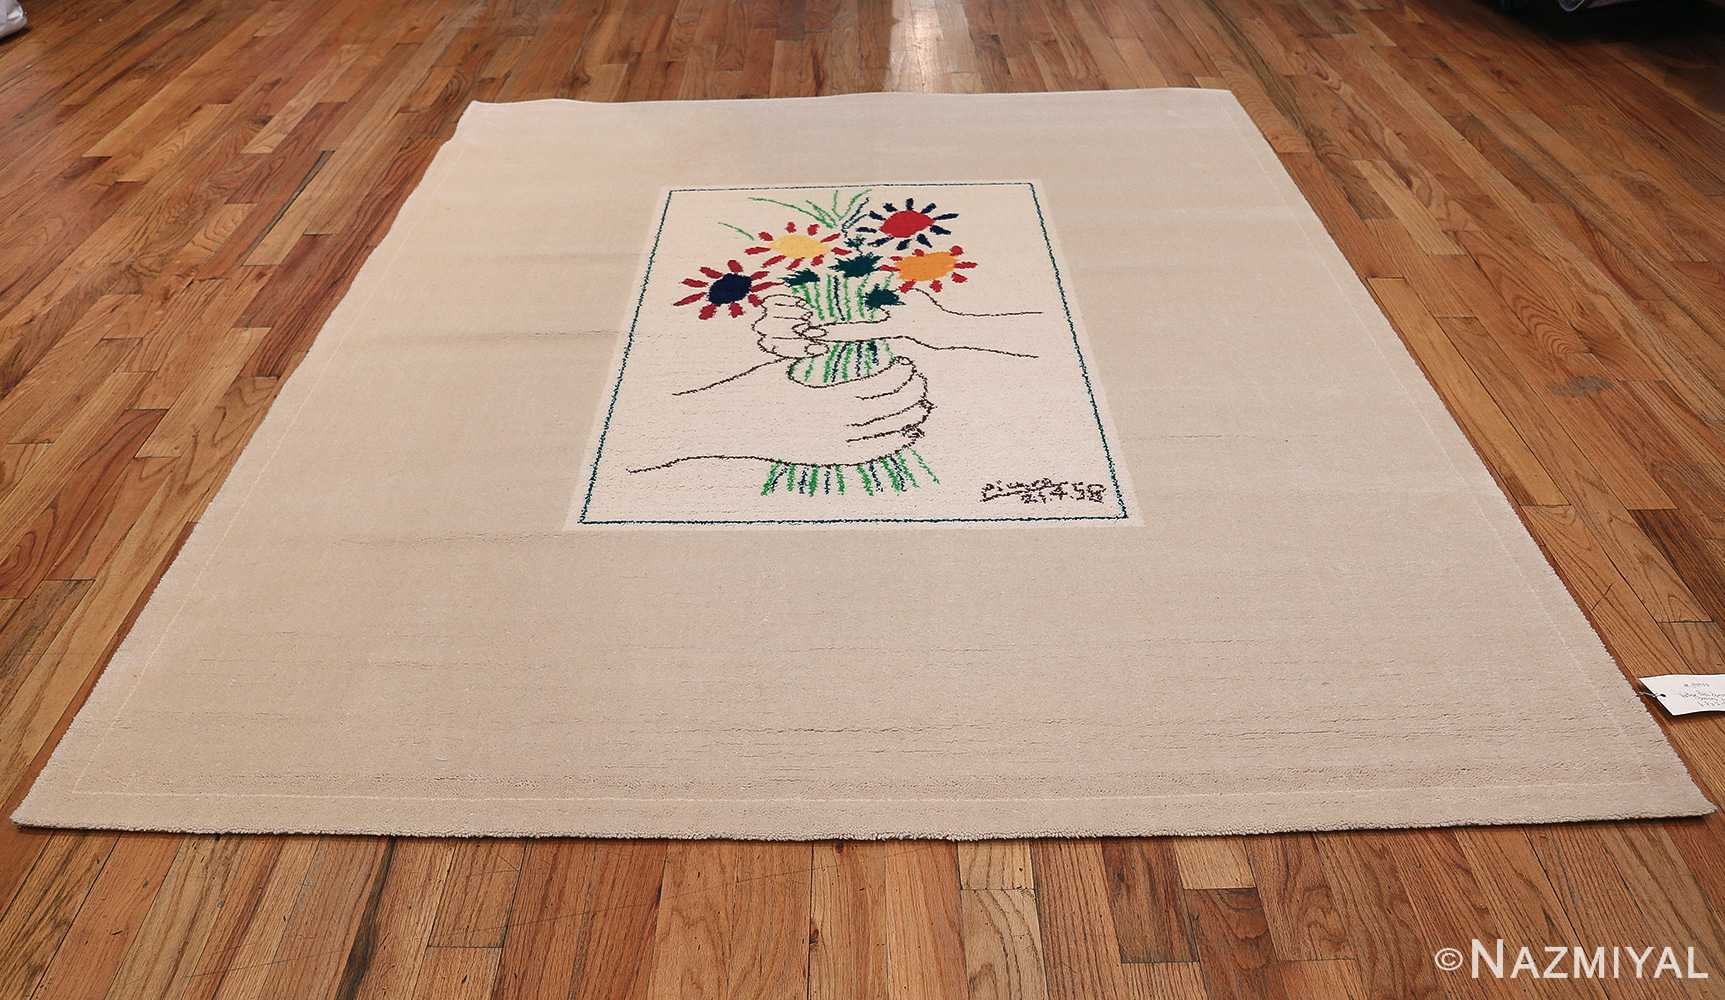 Vintage Le Bouquet Wall Tapestry Rug by Artist Pablo Picasso 48958 Whole Design Nazmiyal